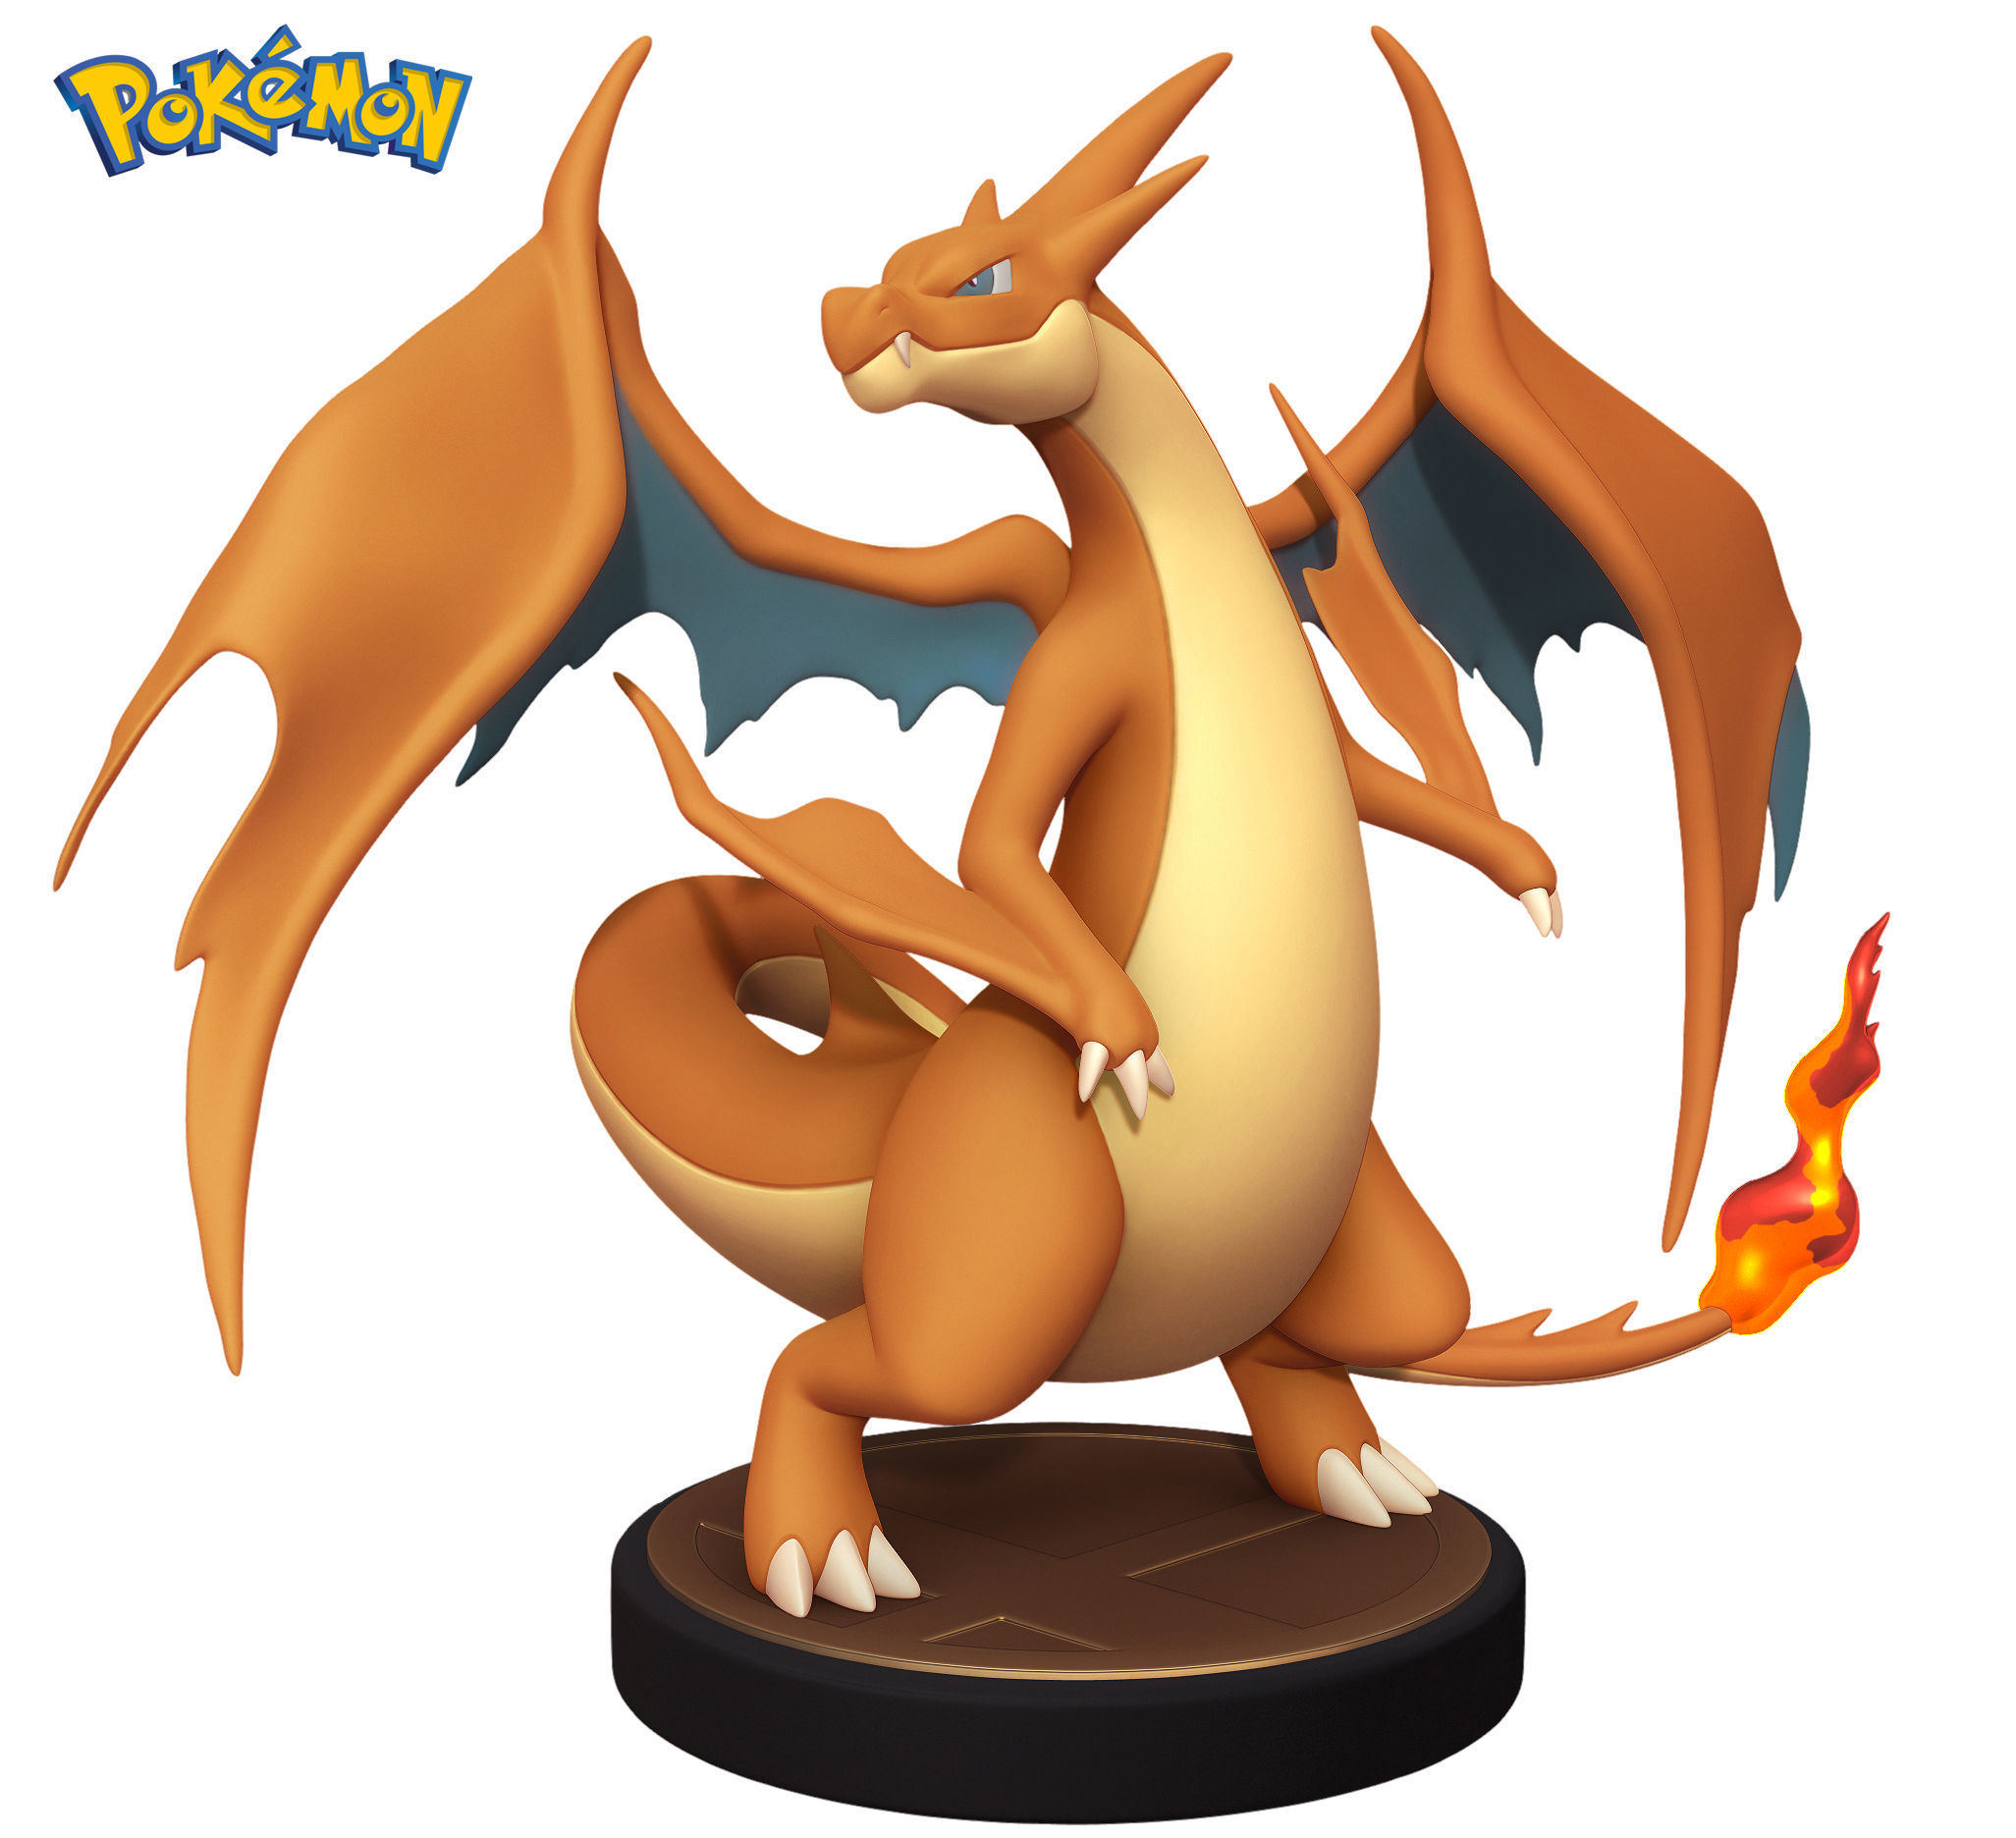 picture regarding Pokemon Printable Images named Pokemon Charizard Y - 3D Printable Determine - Toy 3D Print Design and style